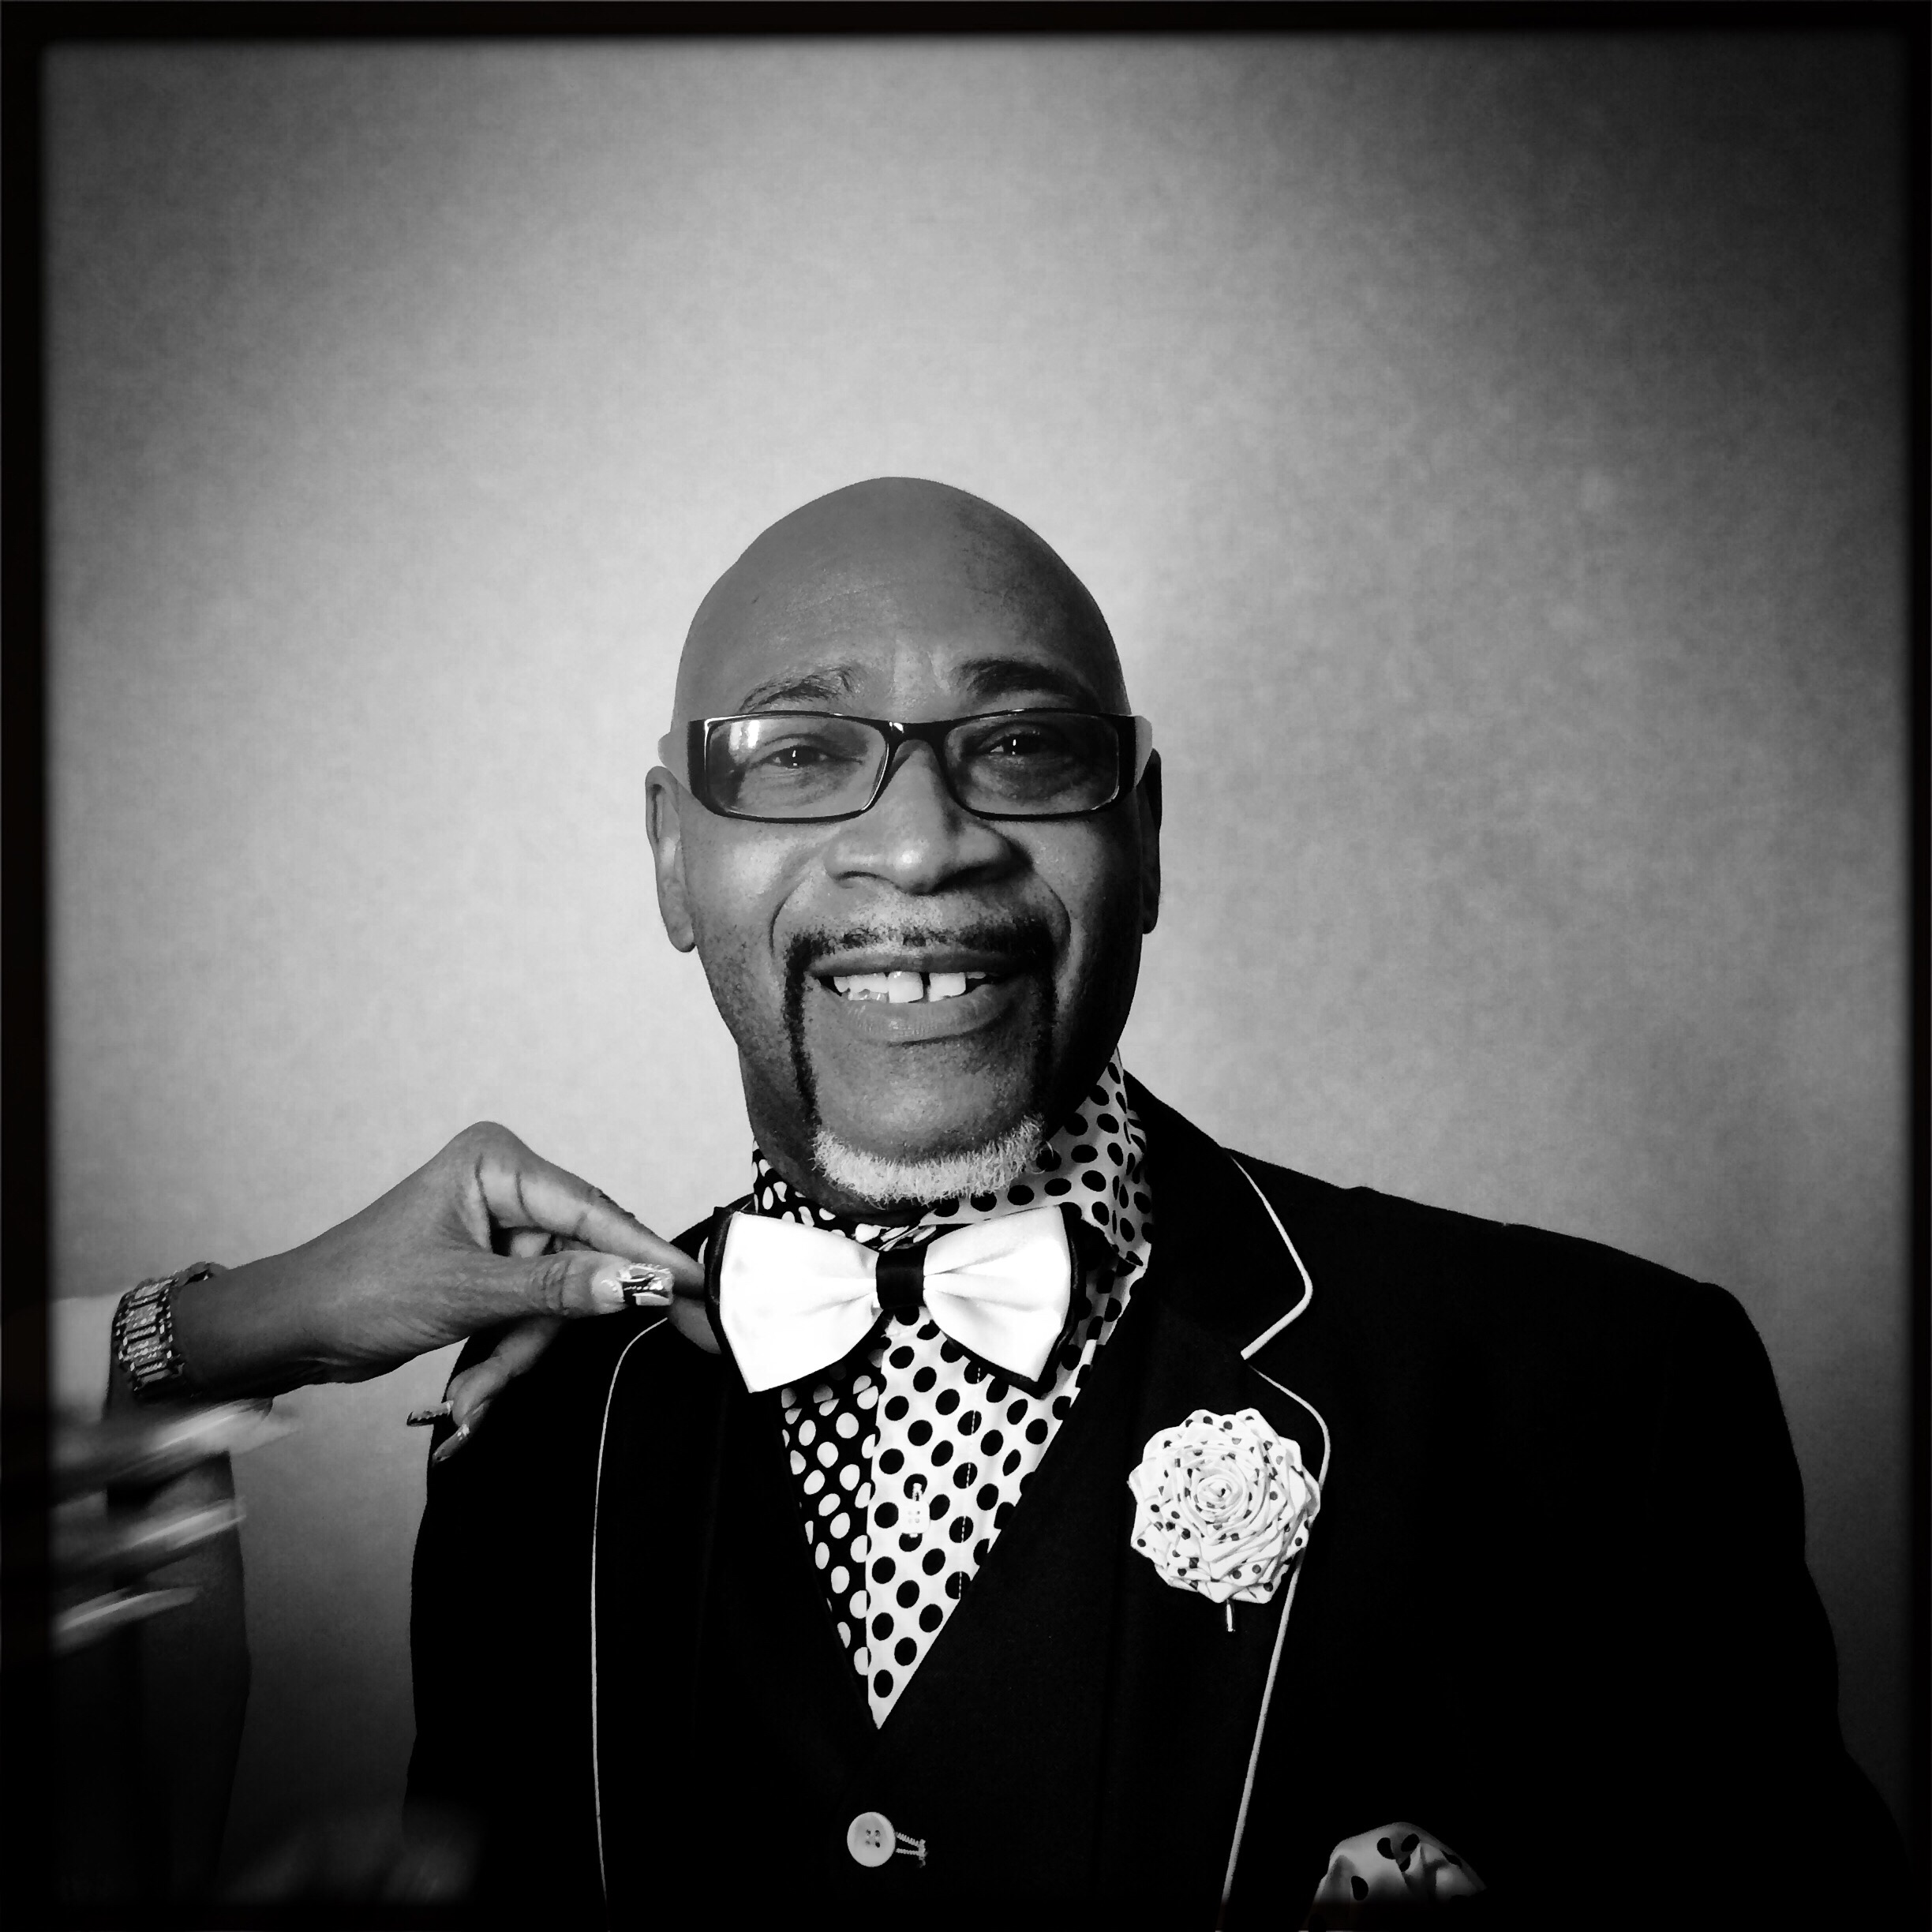 """Dr. E. LaQuint Weaver, founder and director, The Hallelujah Singers, featured in """"Let's Have Some Church Detroit Style,"""" Freep Film Festival. © Nancy Andrews"""